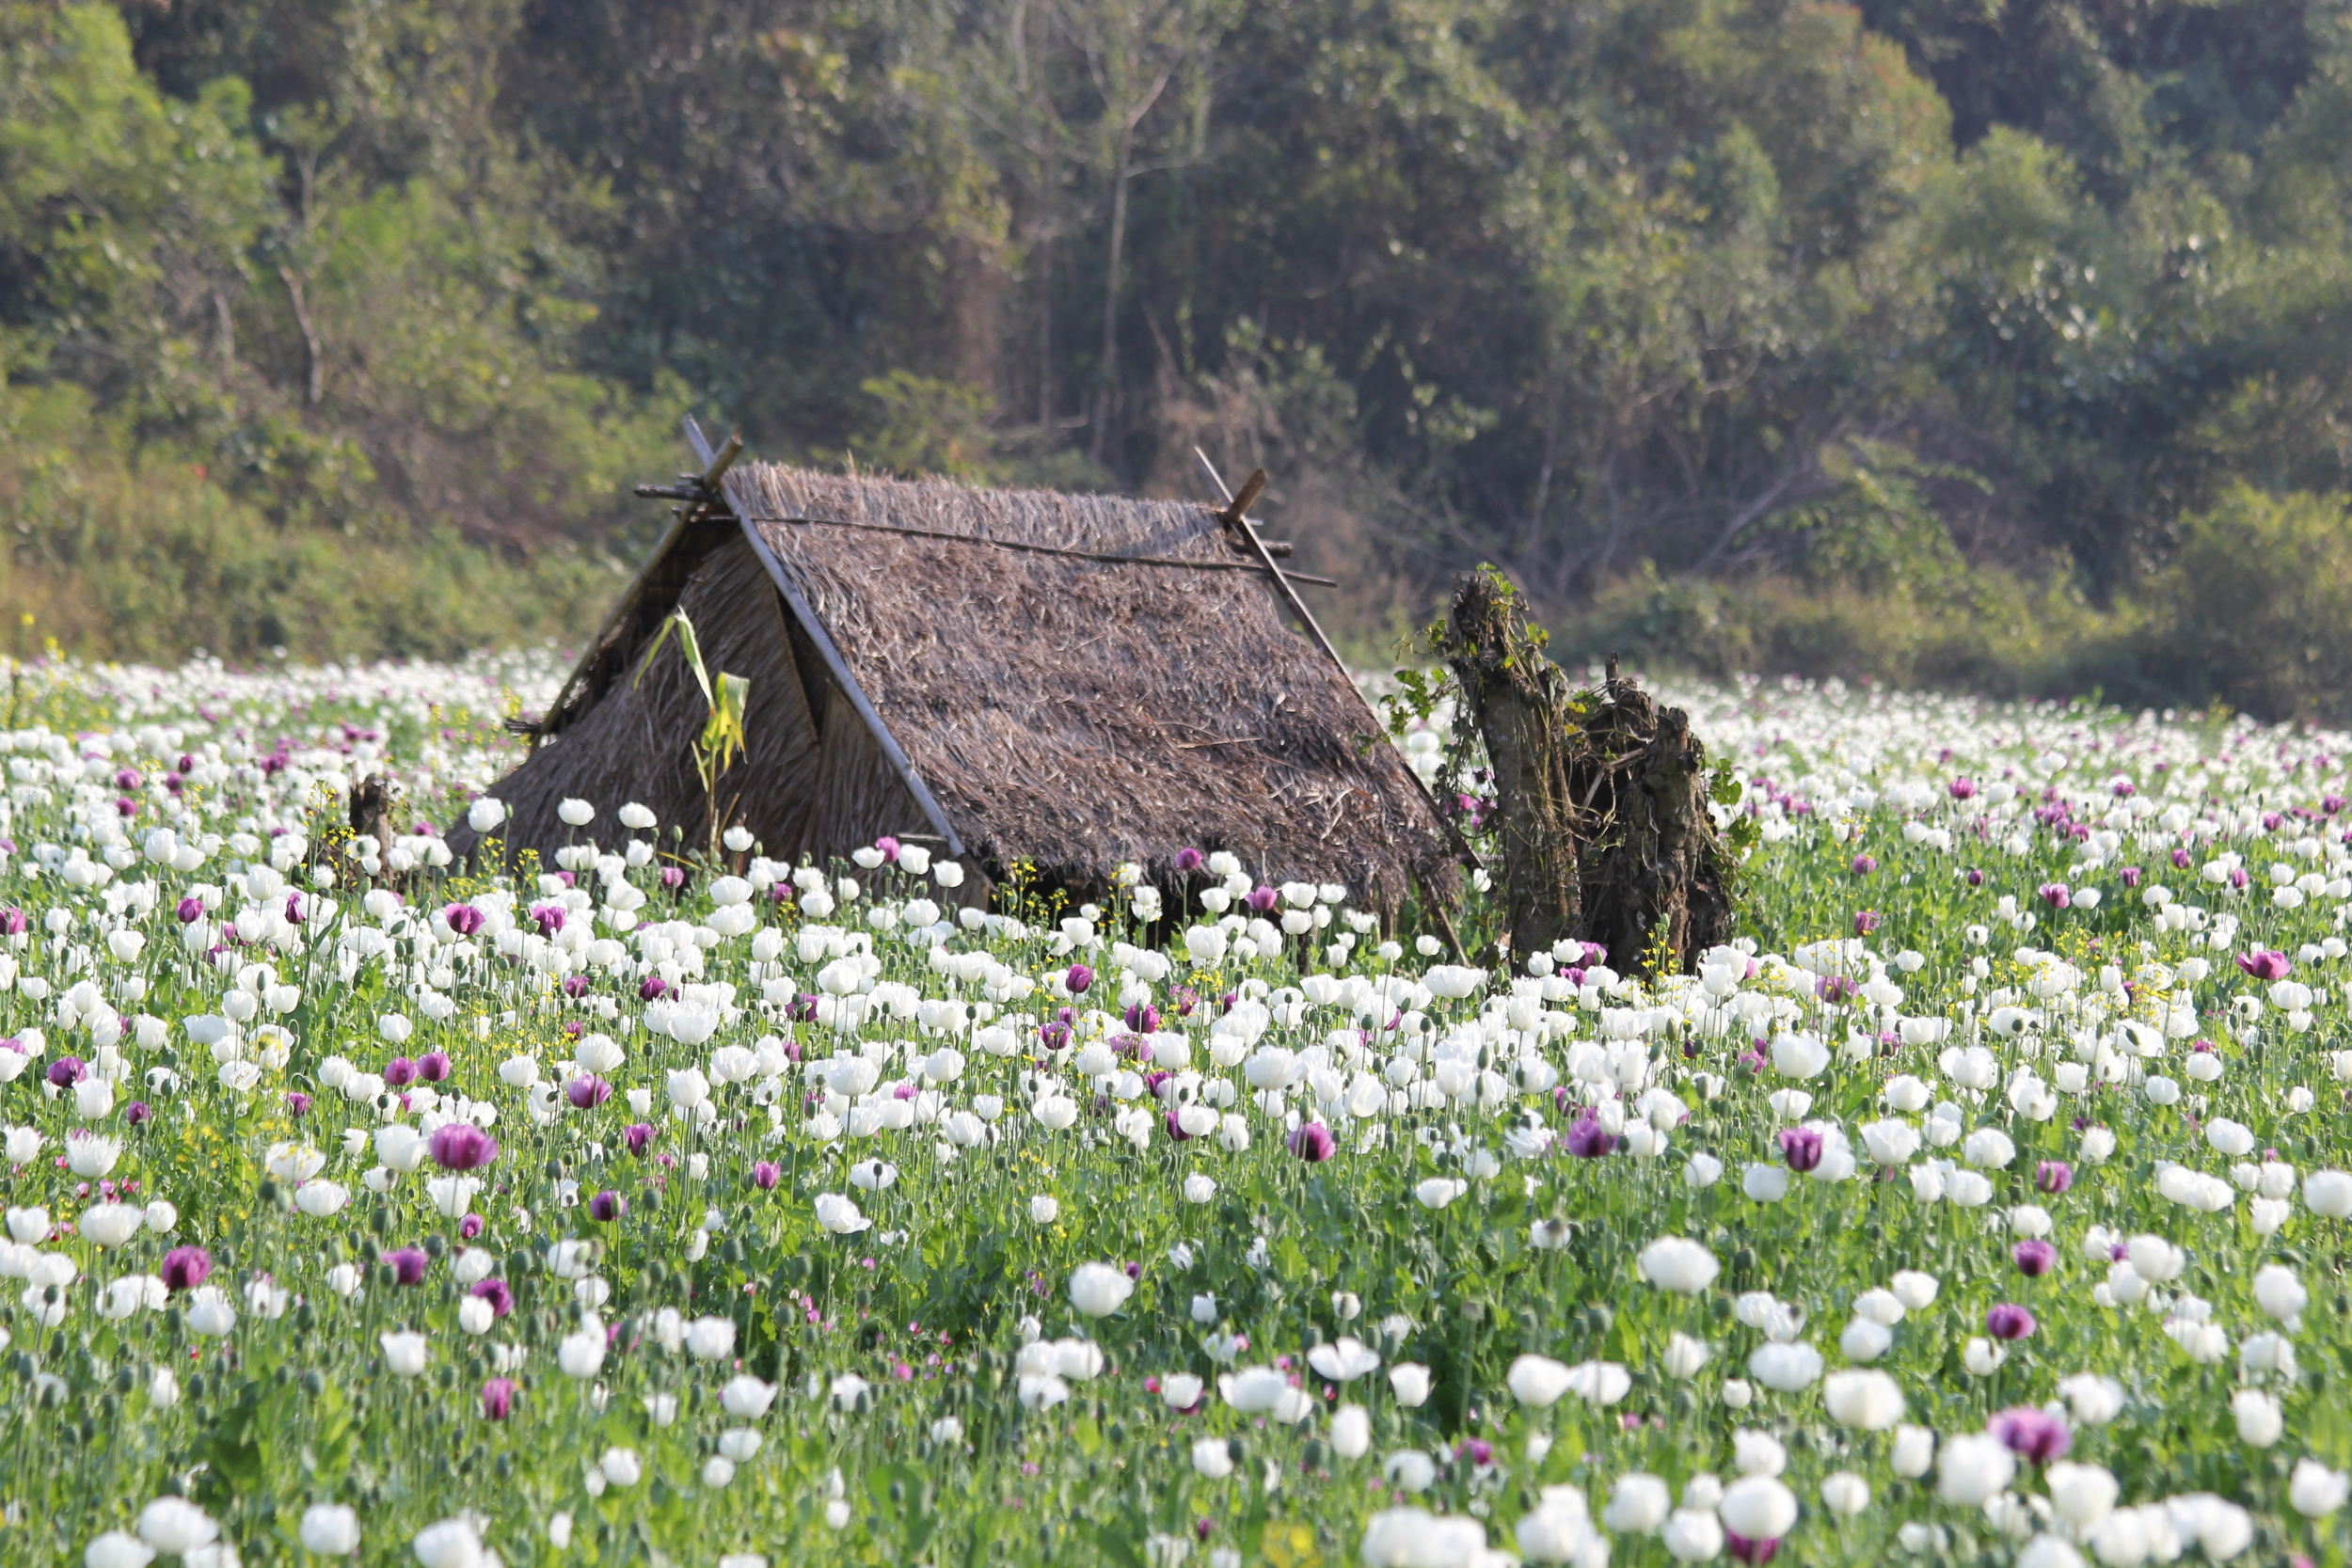 An opium field in Phongsaly Provicne, Laos. Farmers build small camps adjacent to the opium fields, in which they stay throughout the opium growing season. Opium is mostly grown in very remote parts of Laos. Photo: Oudone Sisongkham (2015)